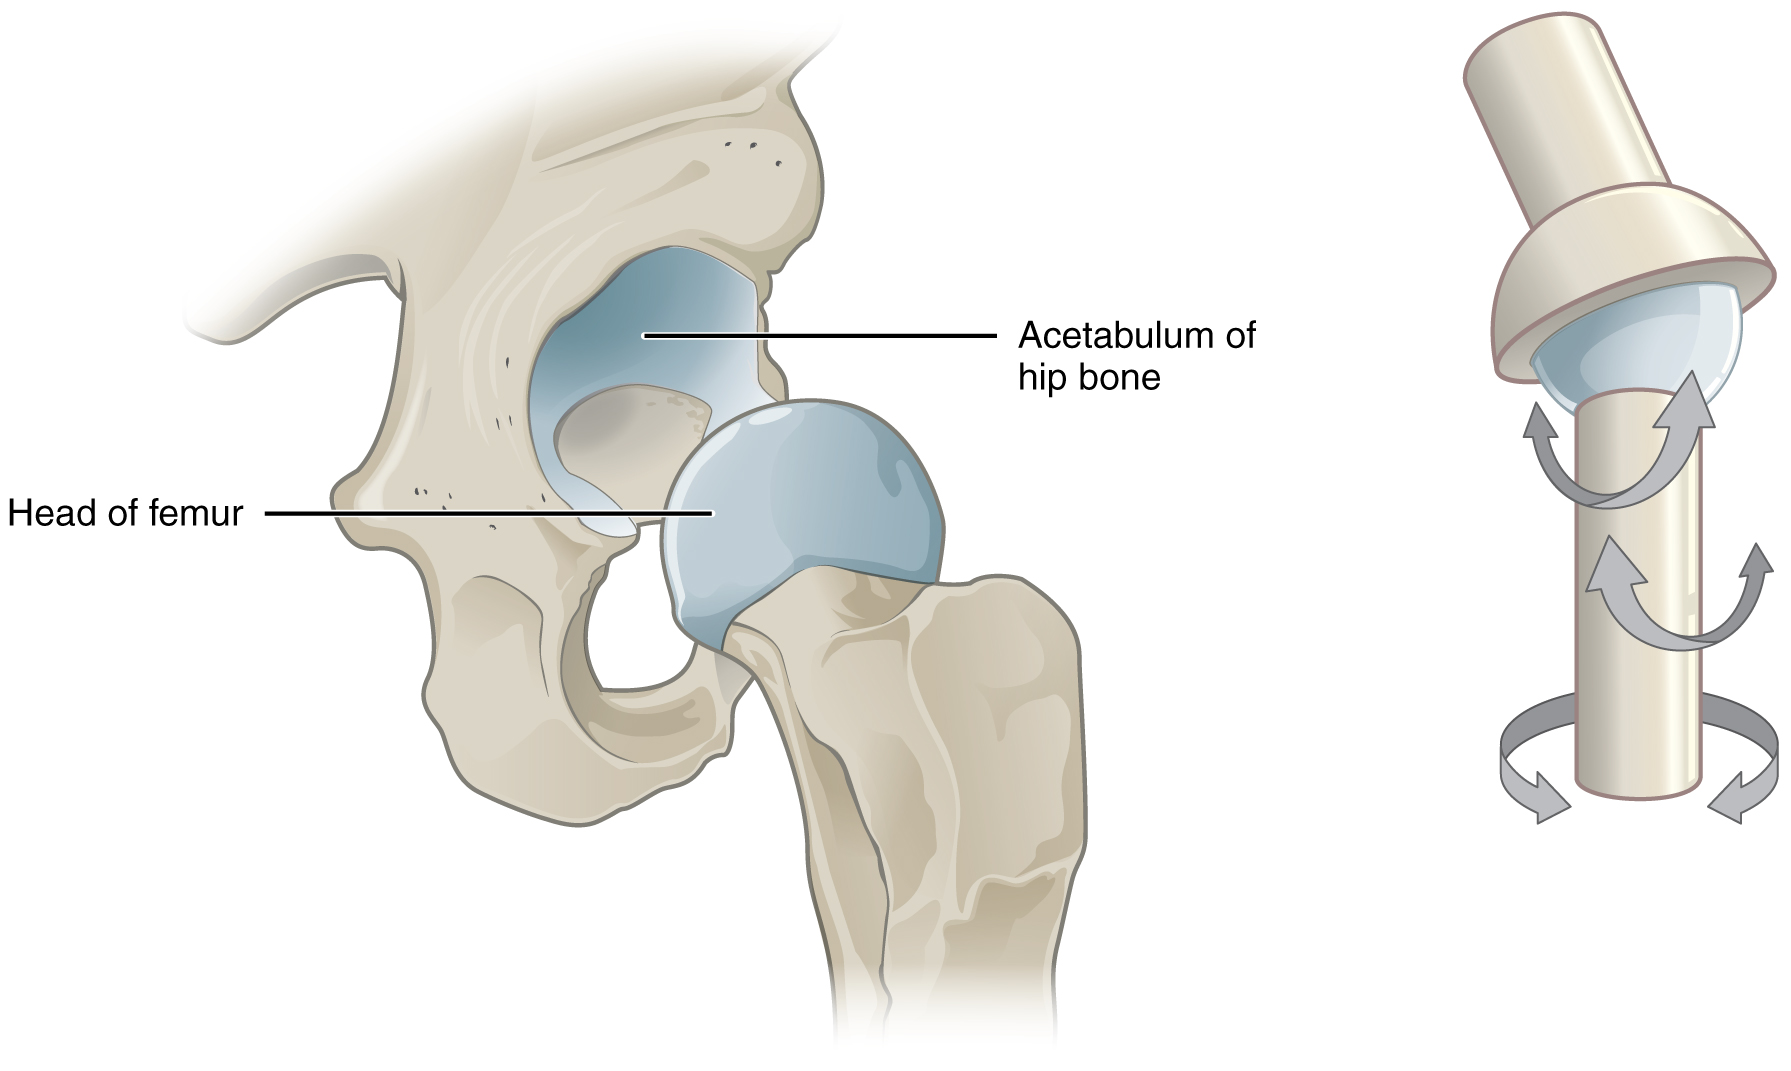 hight resolution of this image shows a multiaxial joint the left panel shows the acetabulum of the hip